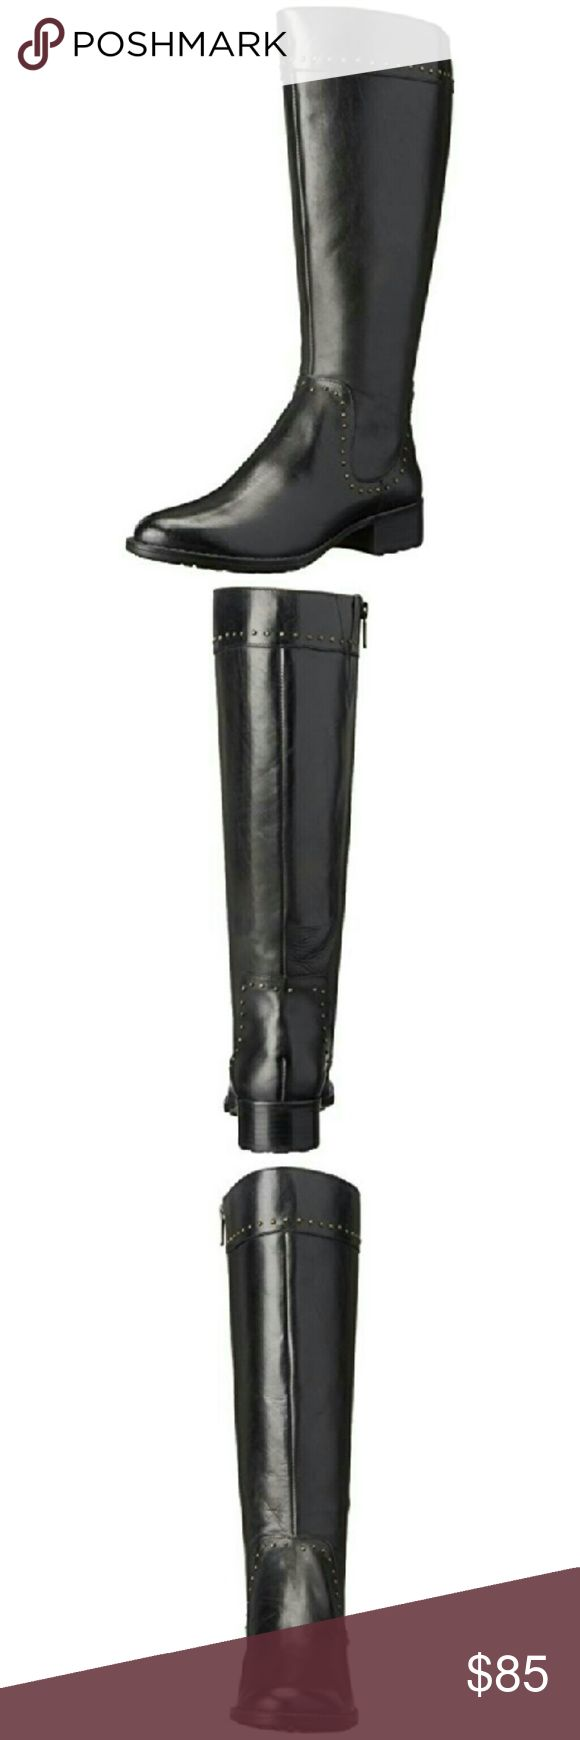 Joan & David Talaro Black Riding Boots NEW 6M Joan & David Womens Talaro Black Riding Boots Shoes 6 Medium  Manufacturer: Joan & David  Size: 6 Medium (B,M)  Manufacturer Color: Black  Retail:$189.00 ConditionNew with box Style Type:Riding, EquestrianCollection:Joan & David Shoe Width:Medium (B, M) Heel Height :1 1/2 Inches Platform Height :1/4 Inches Shaft Height:15 Inches Shaft Width (Inches):15 1/2  Closure:Side Zipper Material:Leather Upper/Balance Man MadeFabric Type:Leather Specialty…